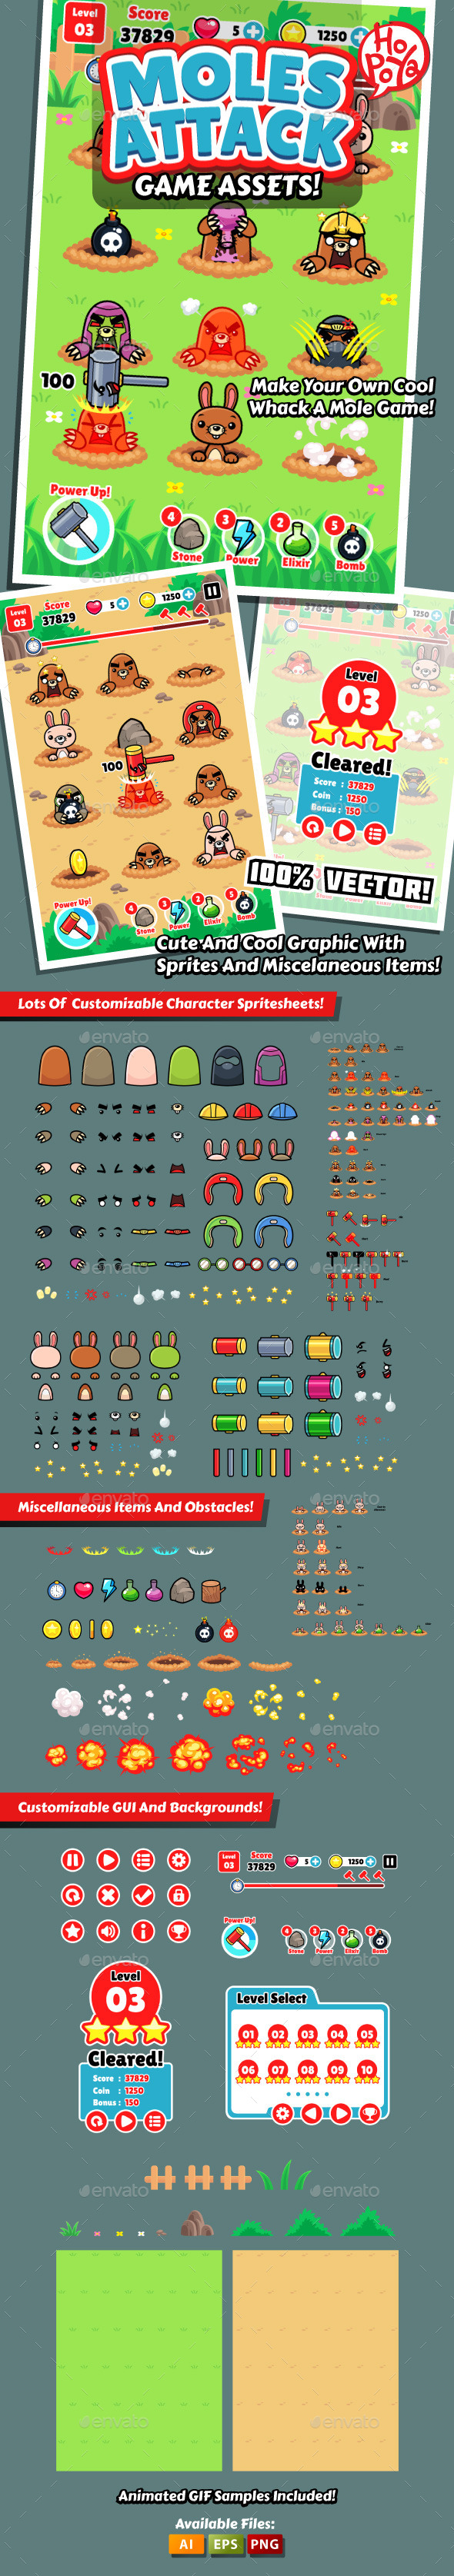 GraphicRiver Moles Attack Game Assets 9982123